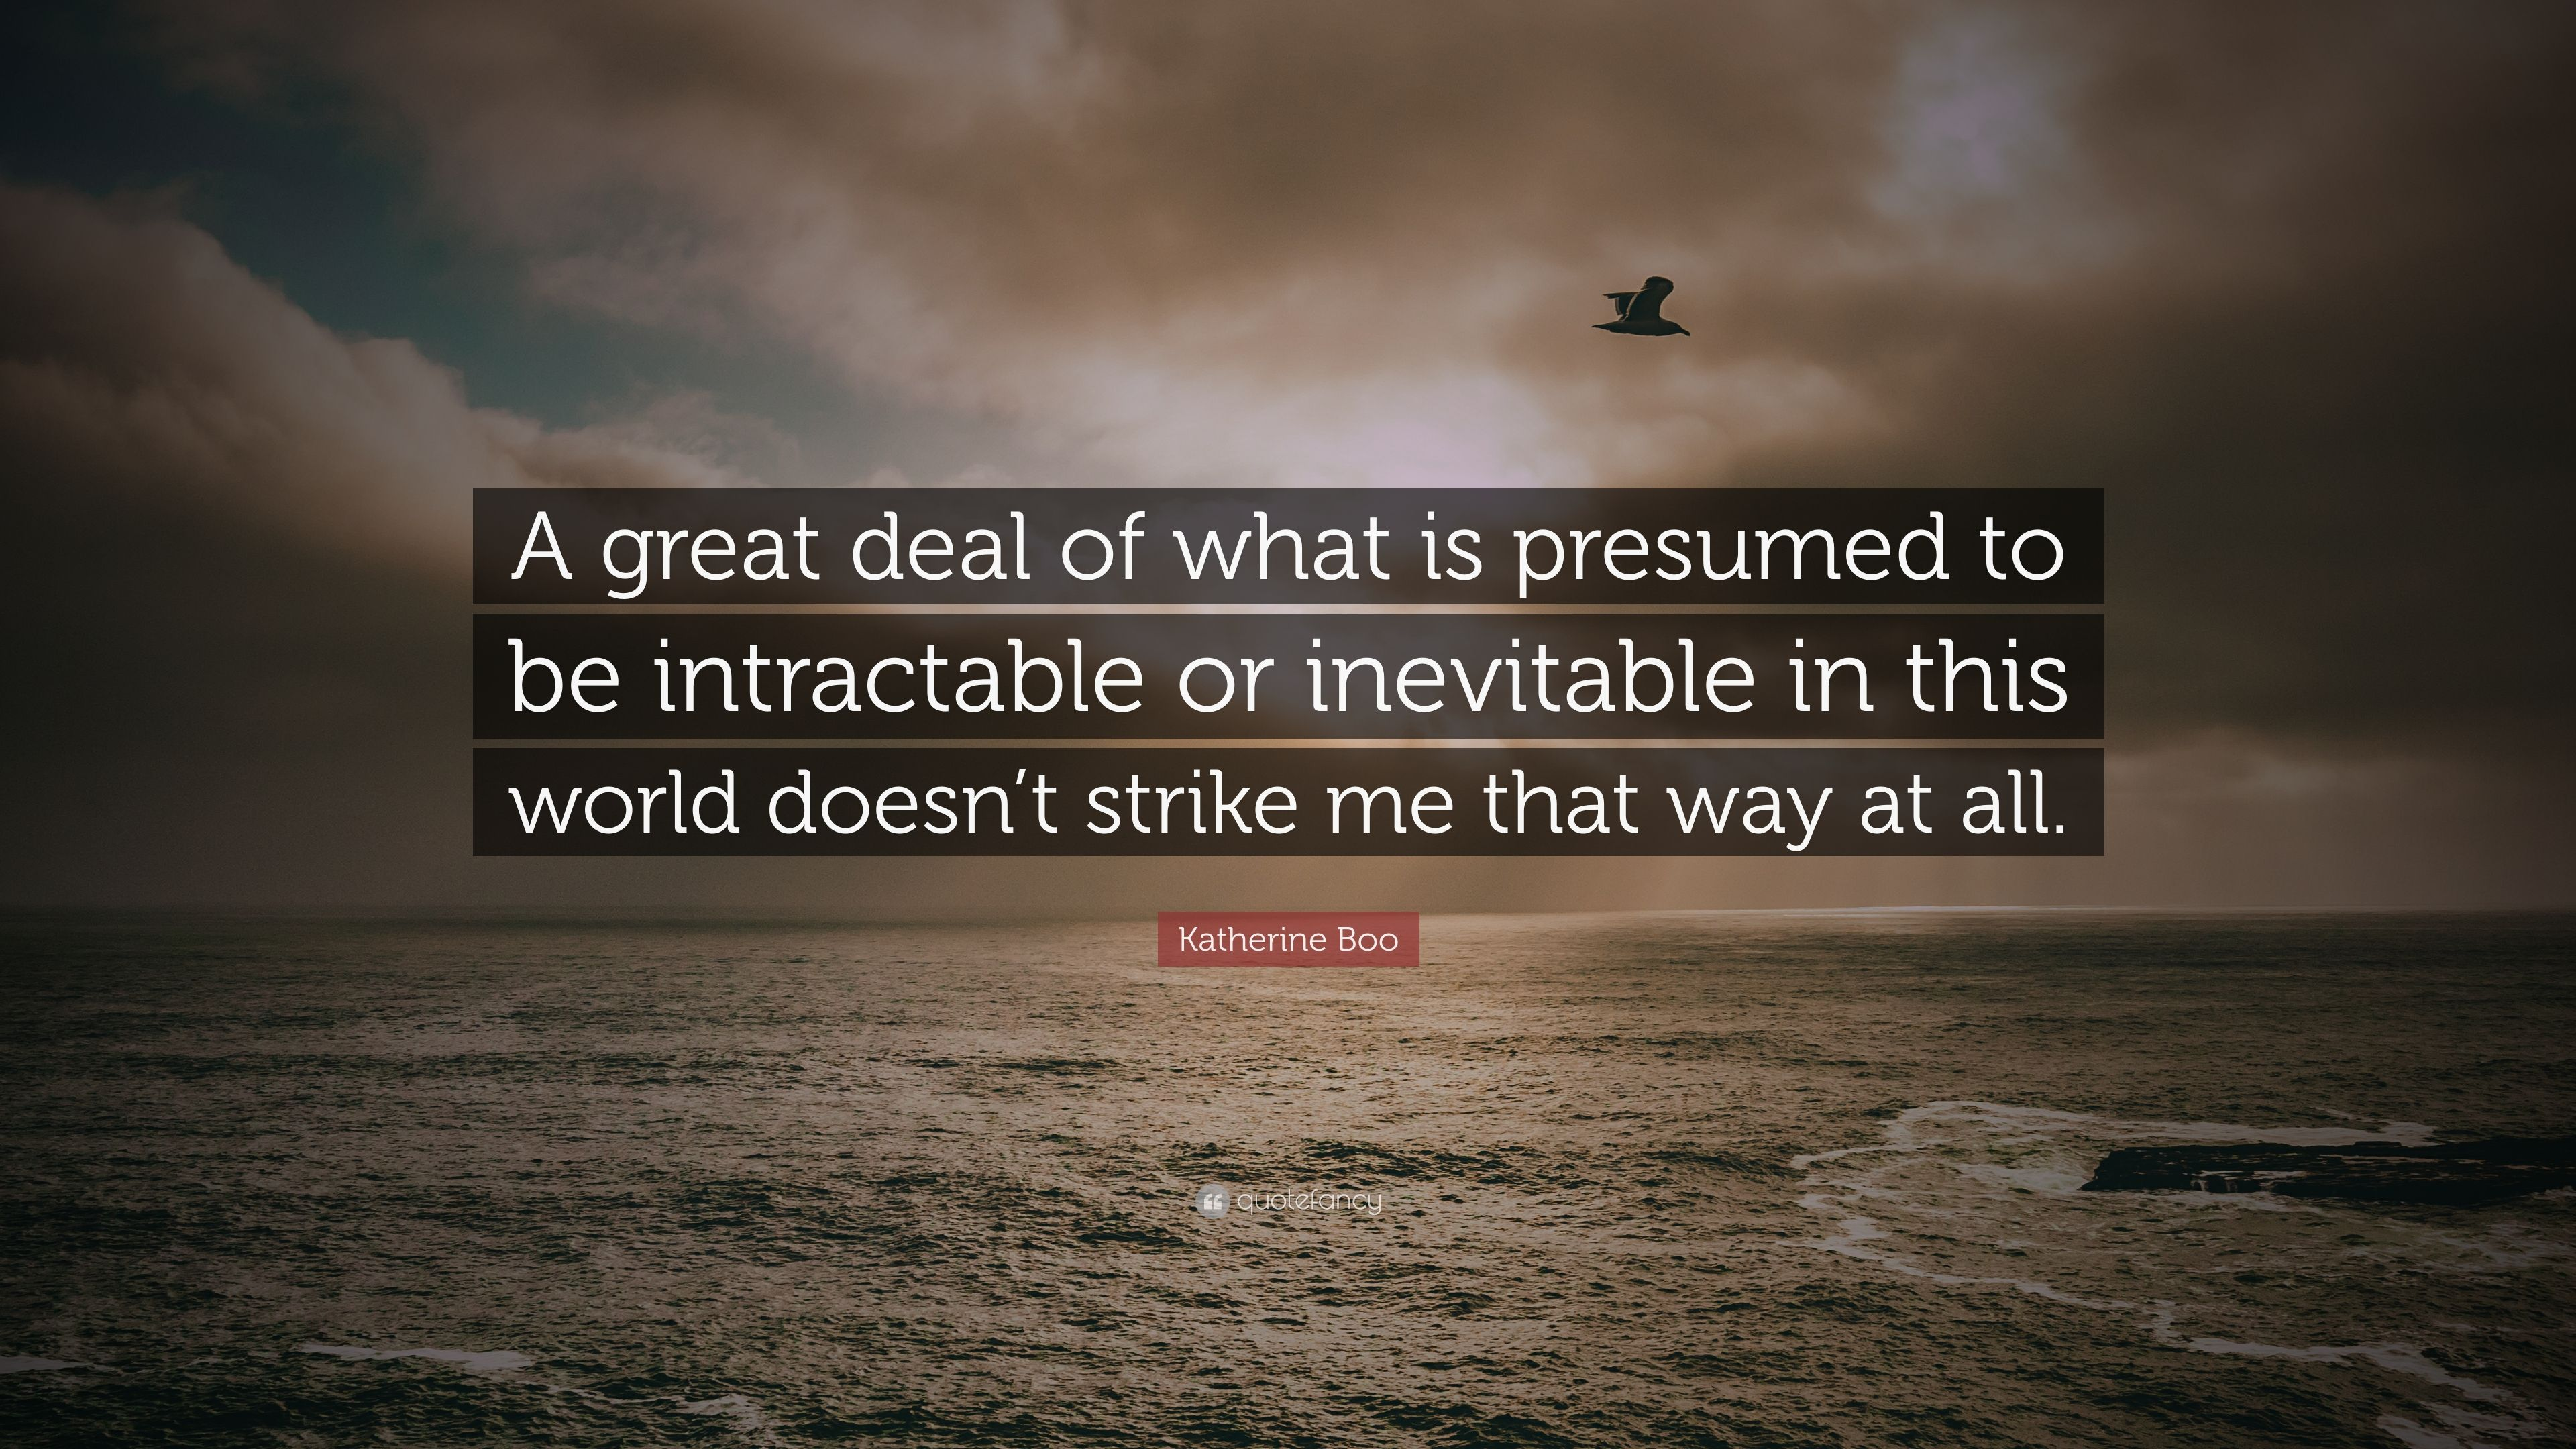 Elegant Katherine Boo Quote: U201cA Great Deal Of What Is Presumed To Be Intractable Or  What Is Presumed